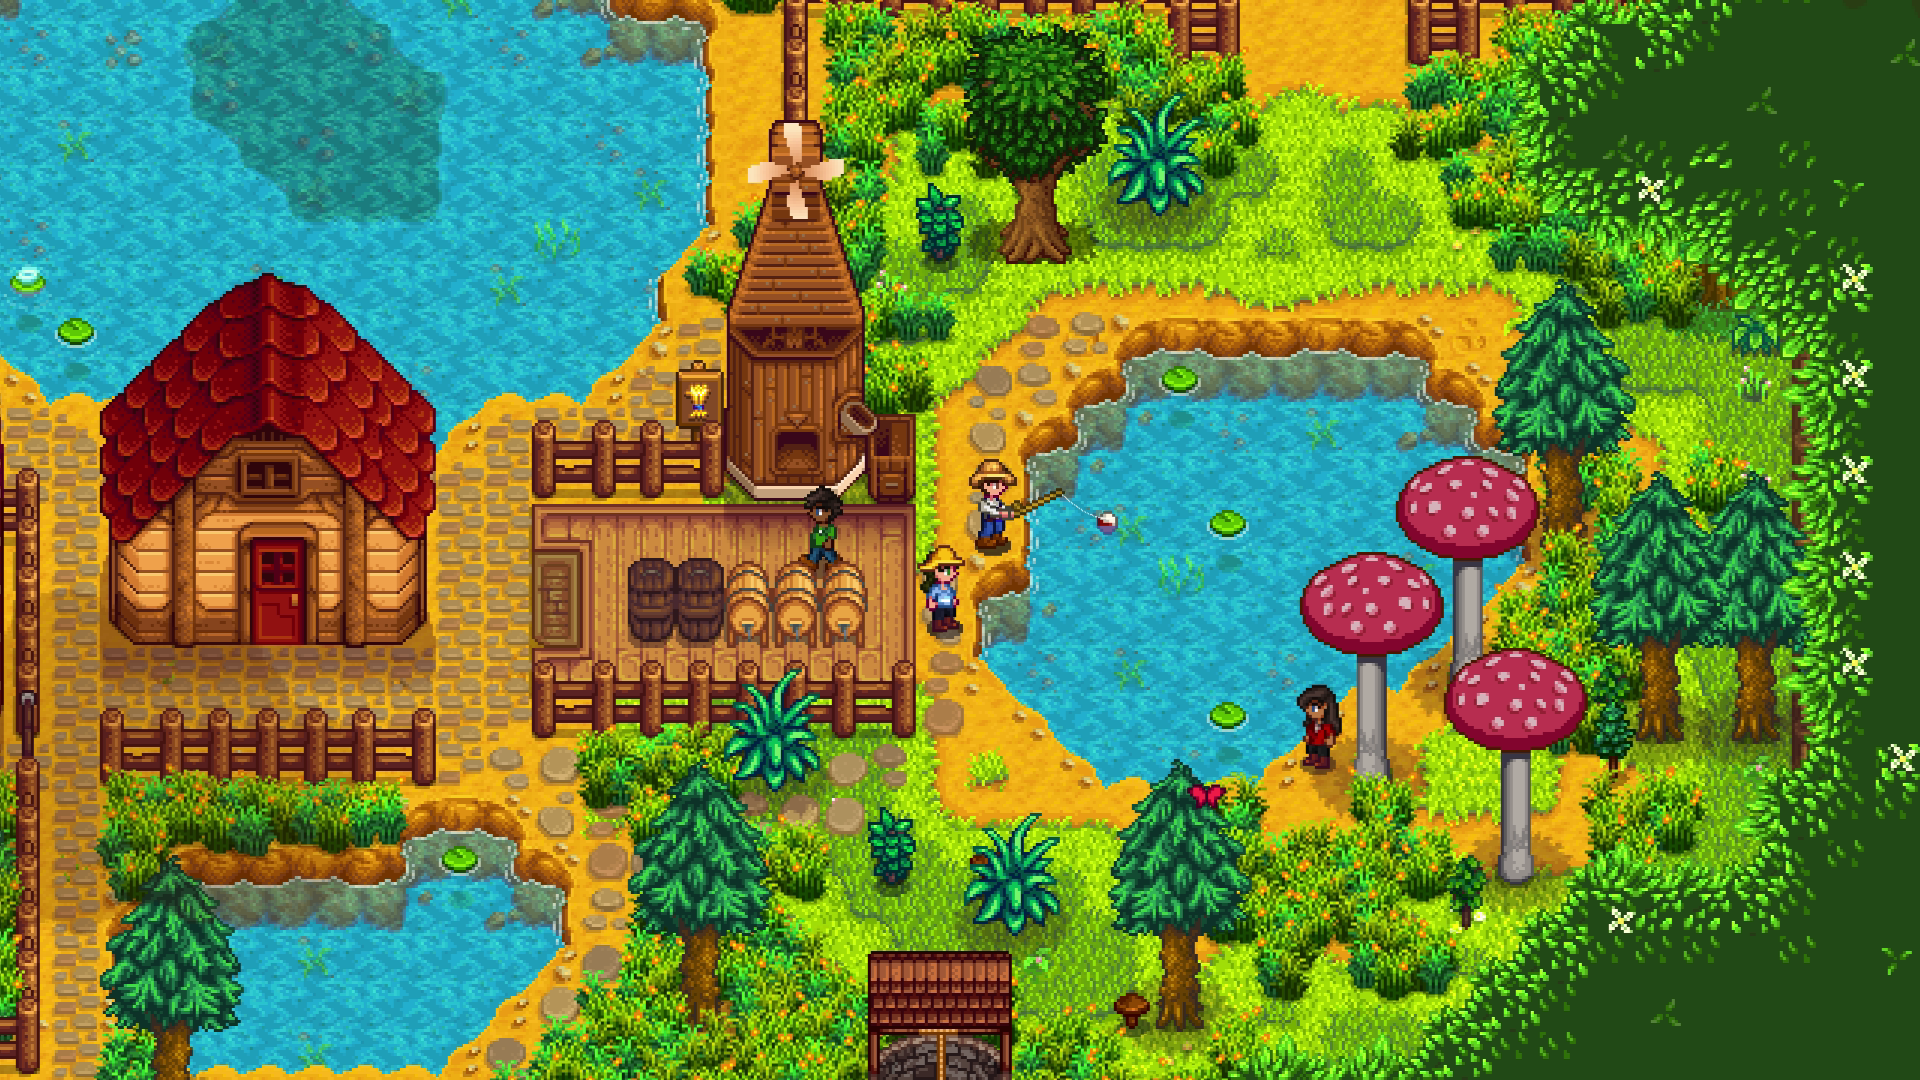 Stardew Valley multiplayer launches on PC in August - Polygon